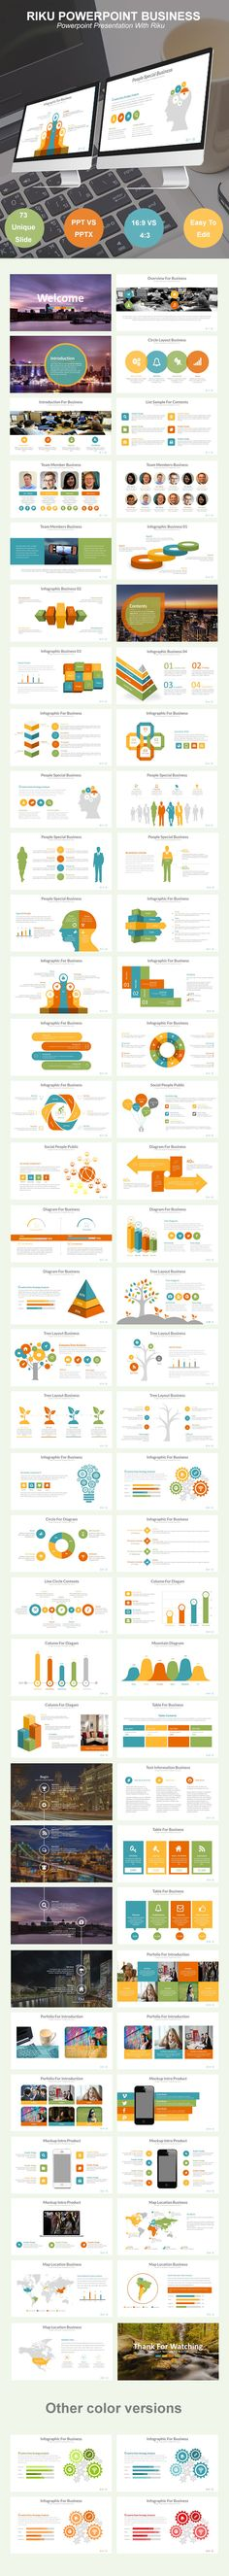 Business Proposal - Premium and Clean Powerpoint Template UPDATED - graphs and charts templates